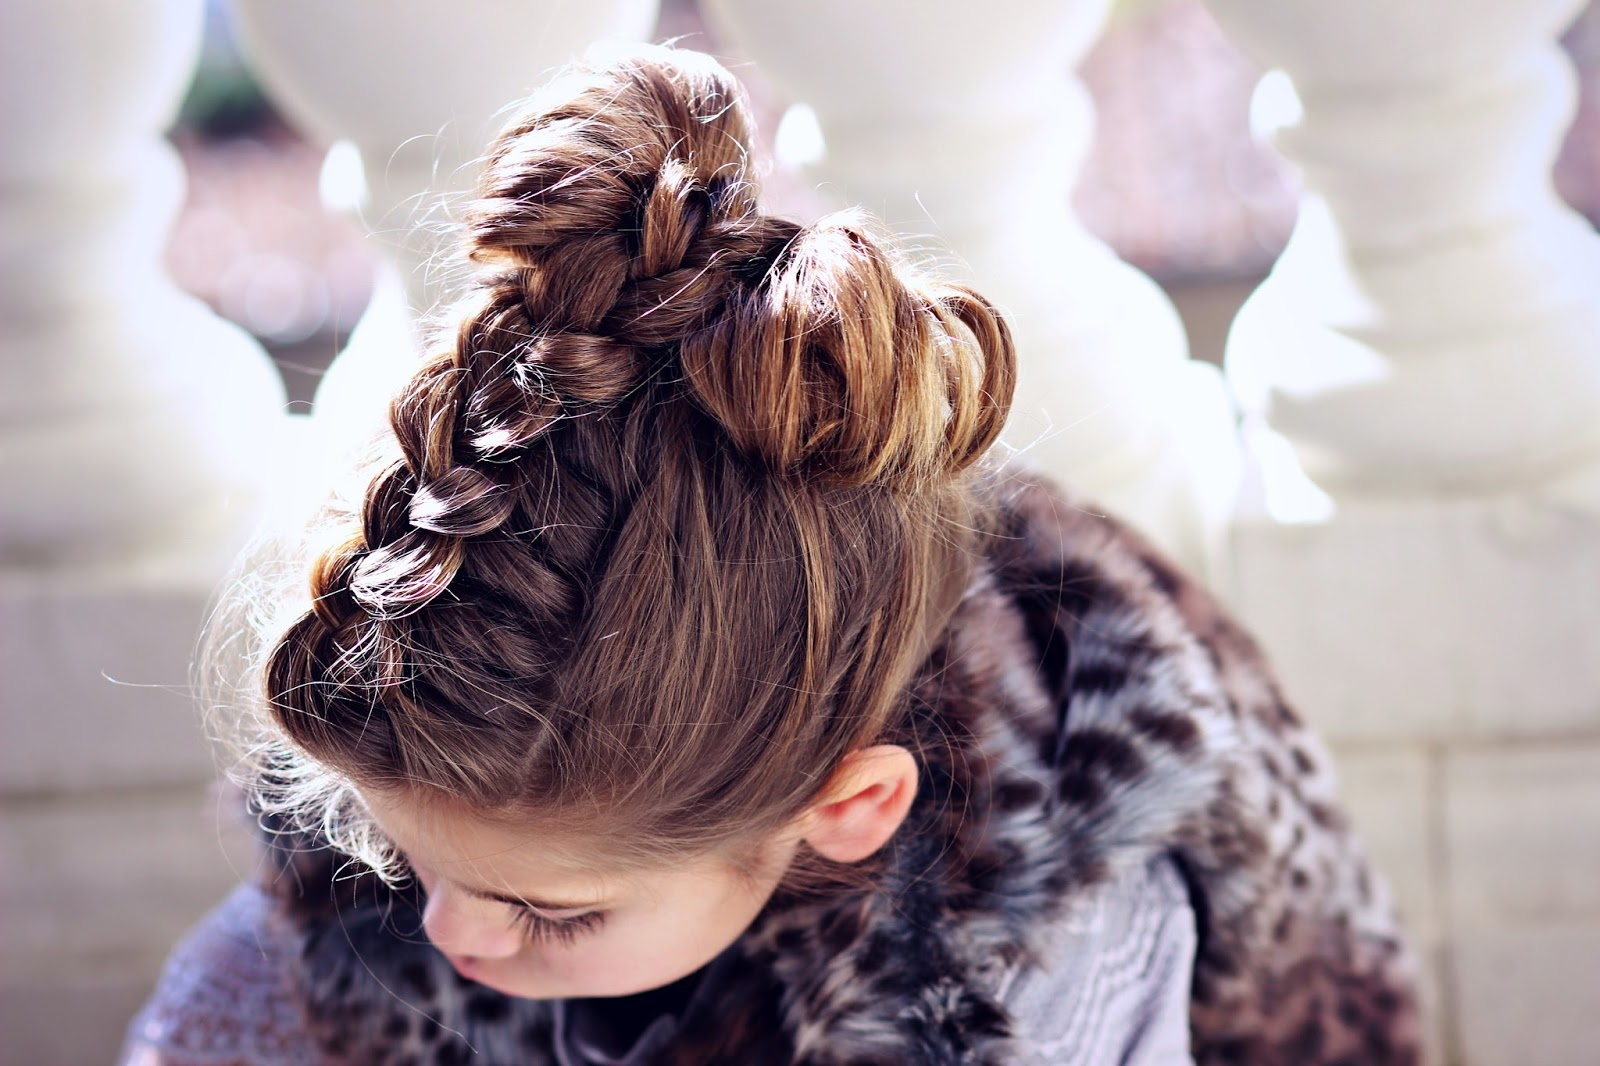 Feeling cozy in petite adele plus hair tutorial a lil bit fancy how to make a hair bow with braid baditri Image collections